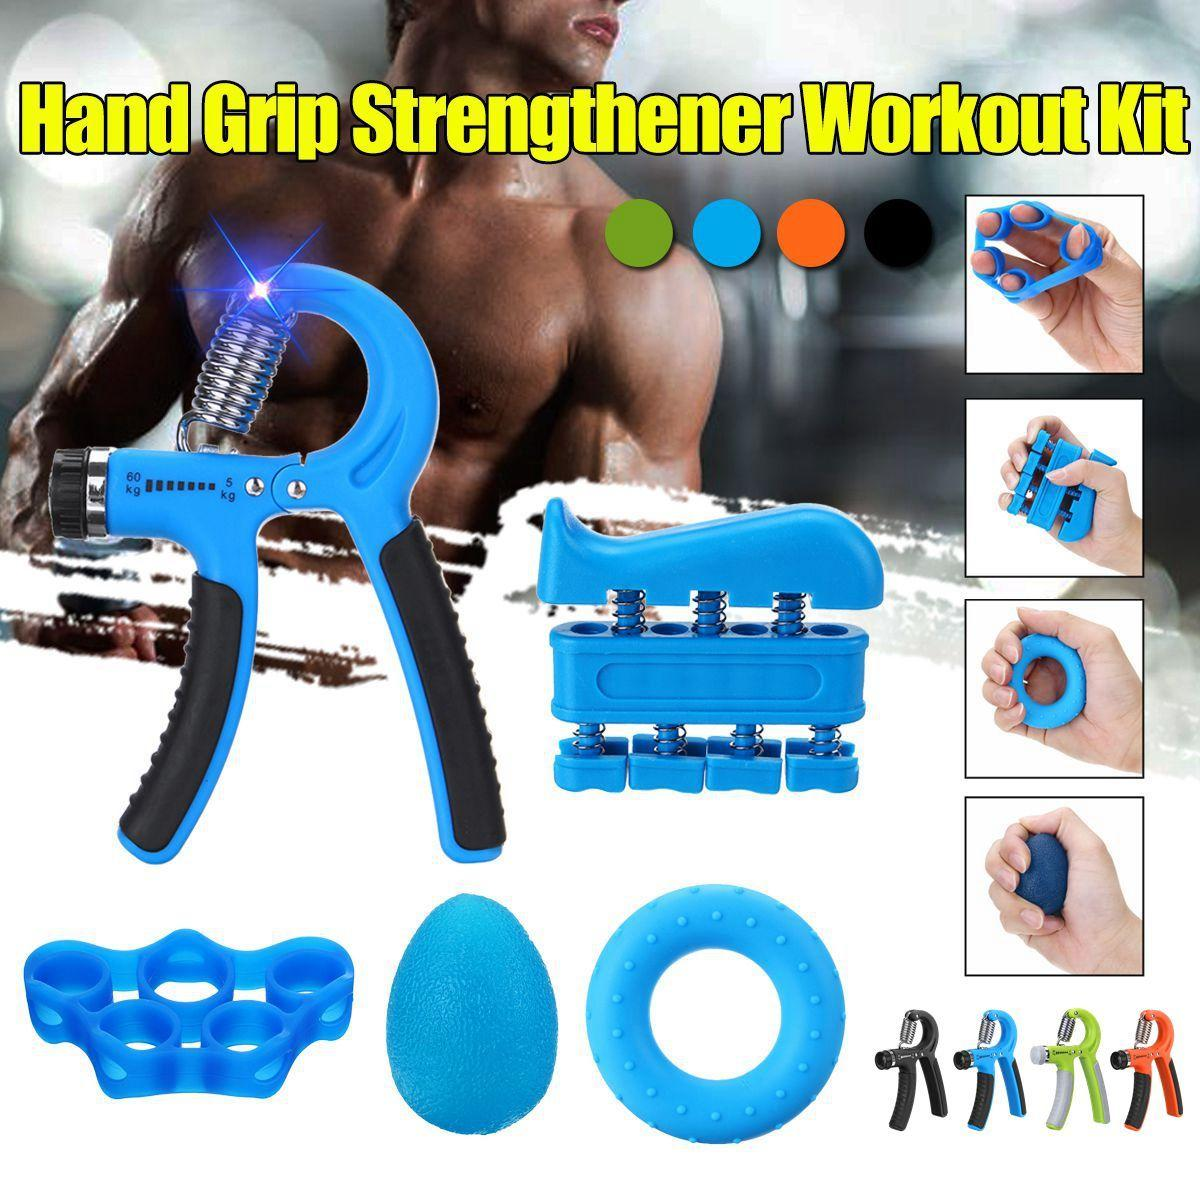 5pcs / set Adjustable Handgriff Leistung Exerciser Stärkungs Kraft Trainer Handtrainer Gripper Übung Fitness-Training Kit Y200506